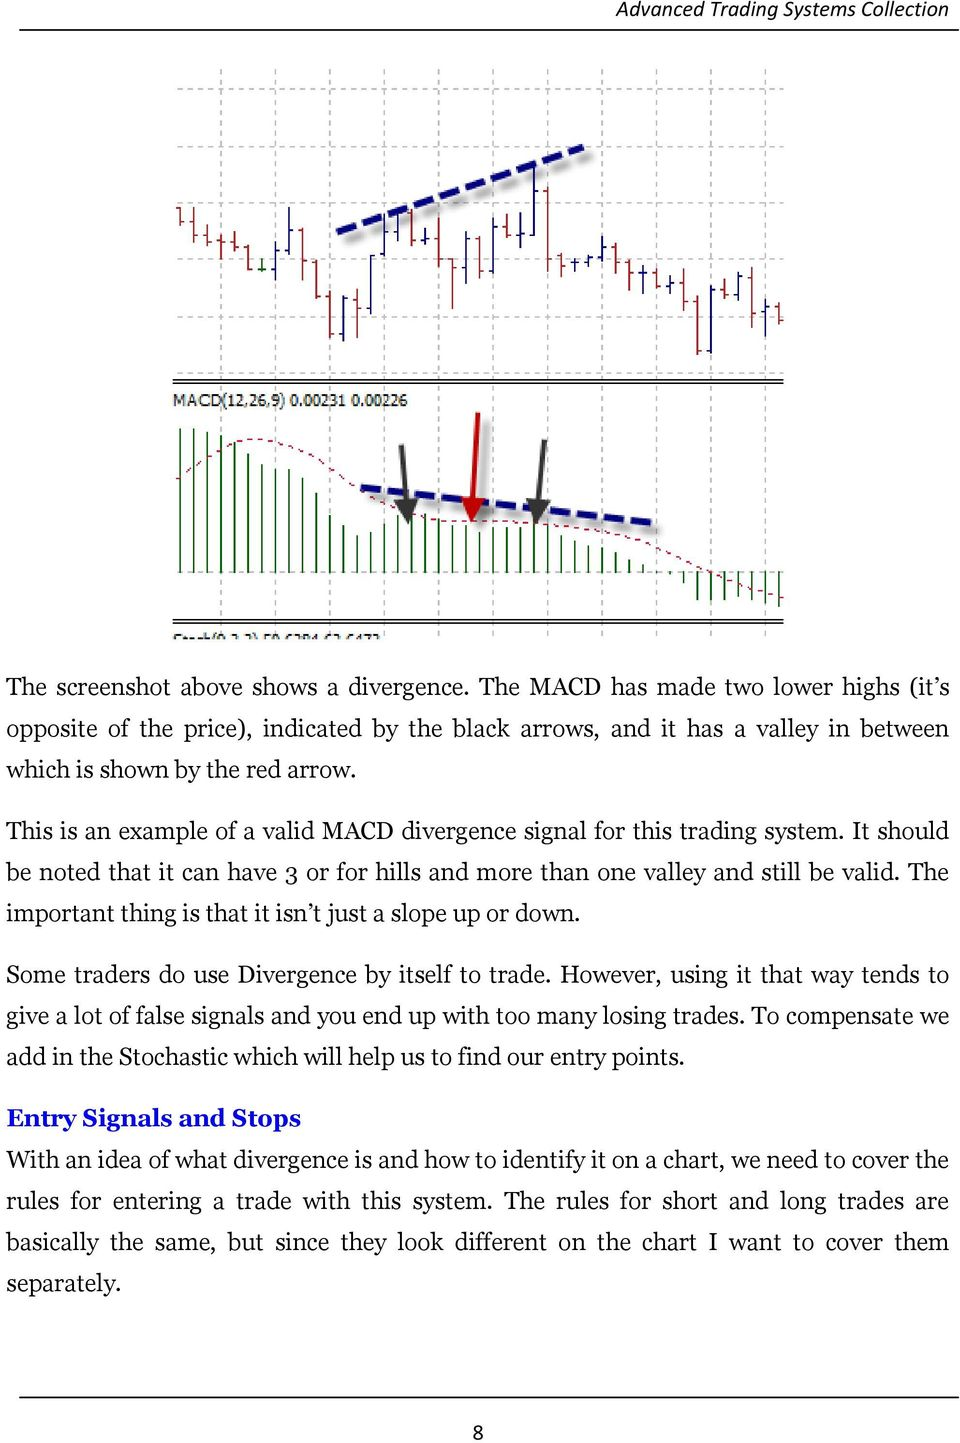 The important thing is that it isn t just a slope up or down. Some traders do use Divergence by itself to trade.